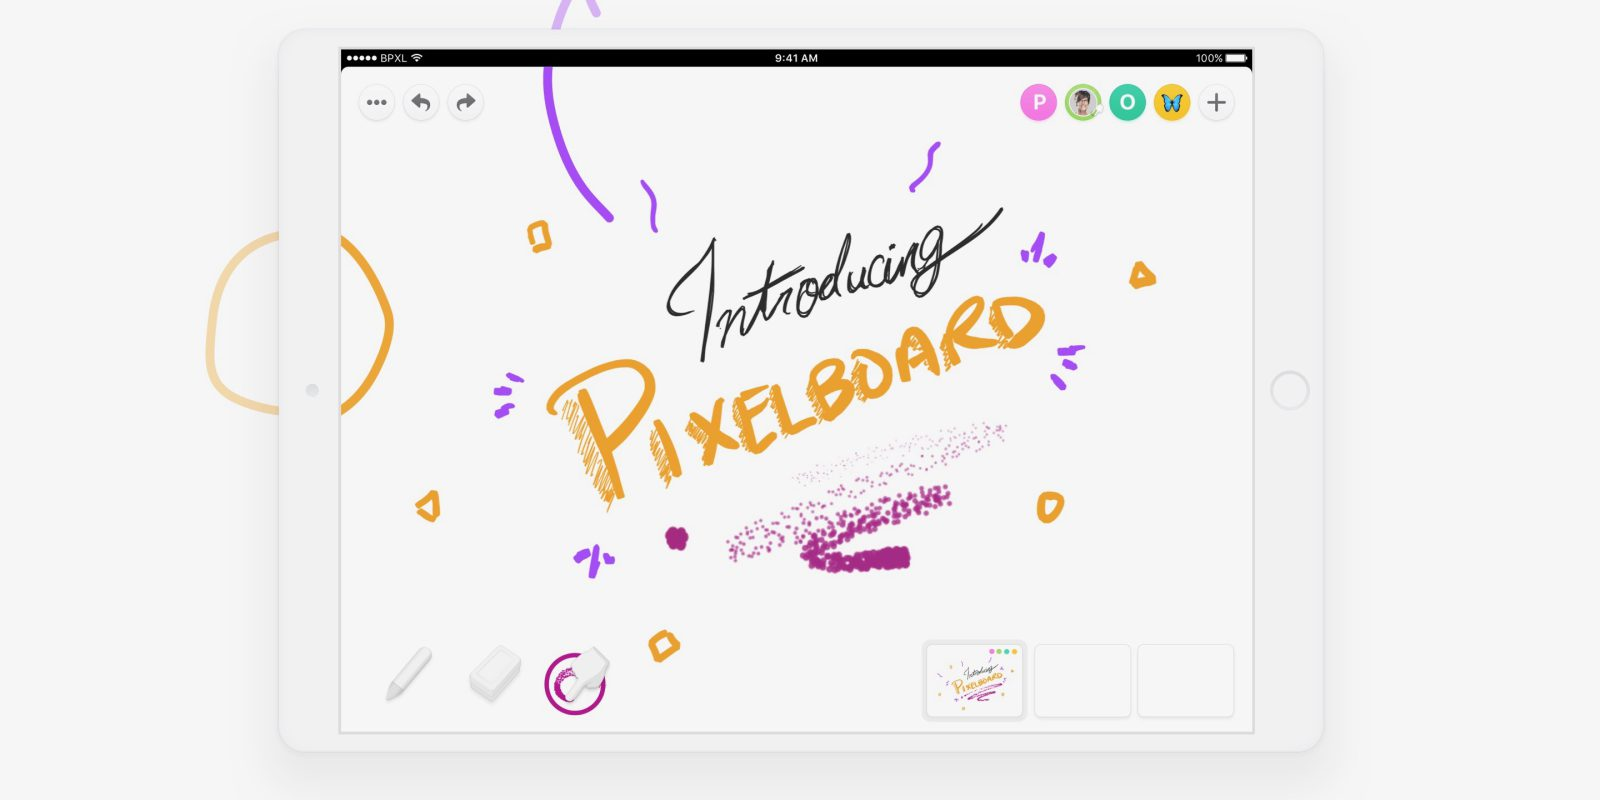 Photo of Black Pixel and Pixelboard have created a whiteboard app for the iPad